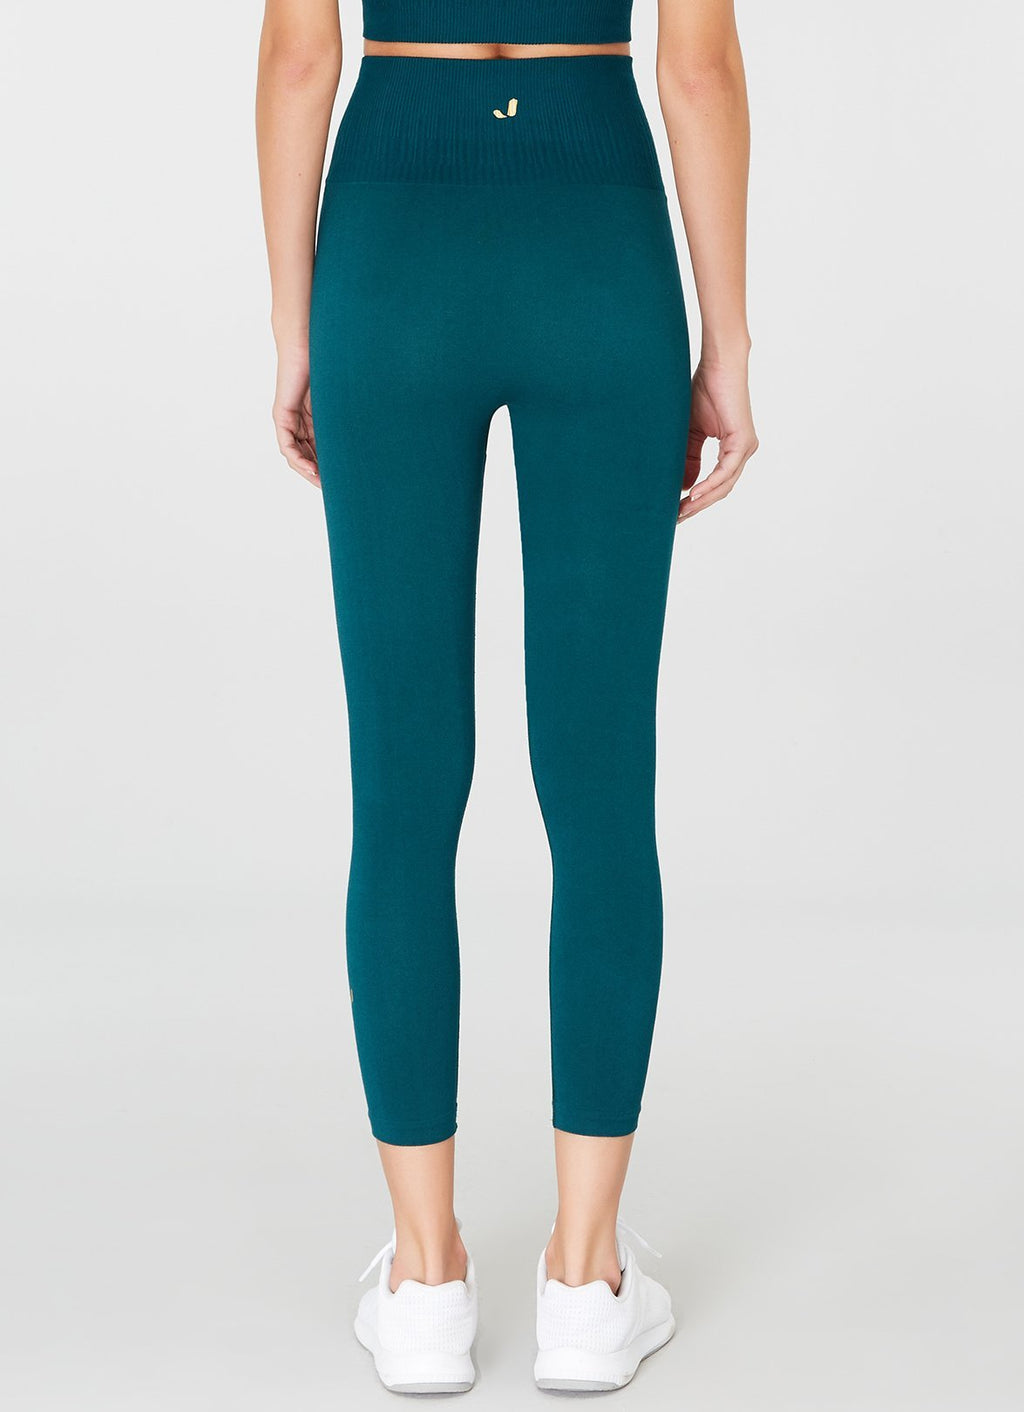 Jerf Luz Green Leggings